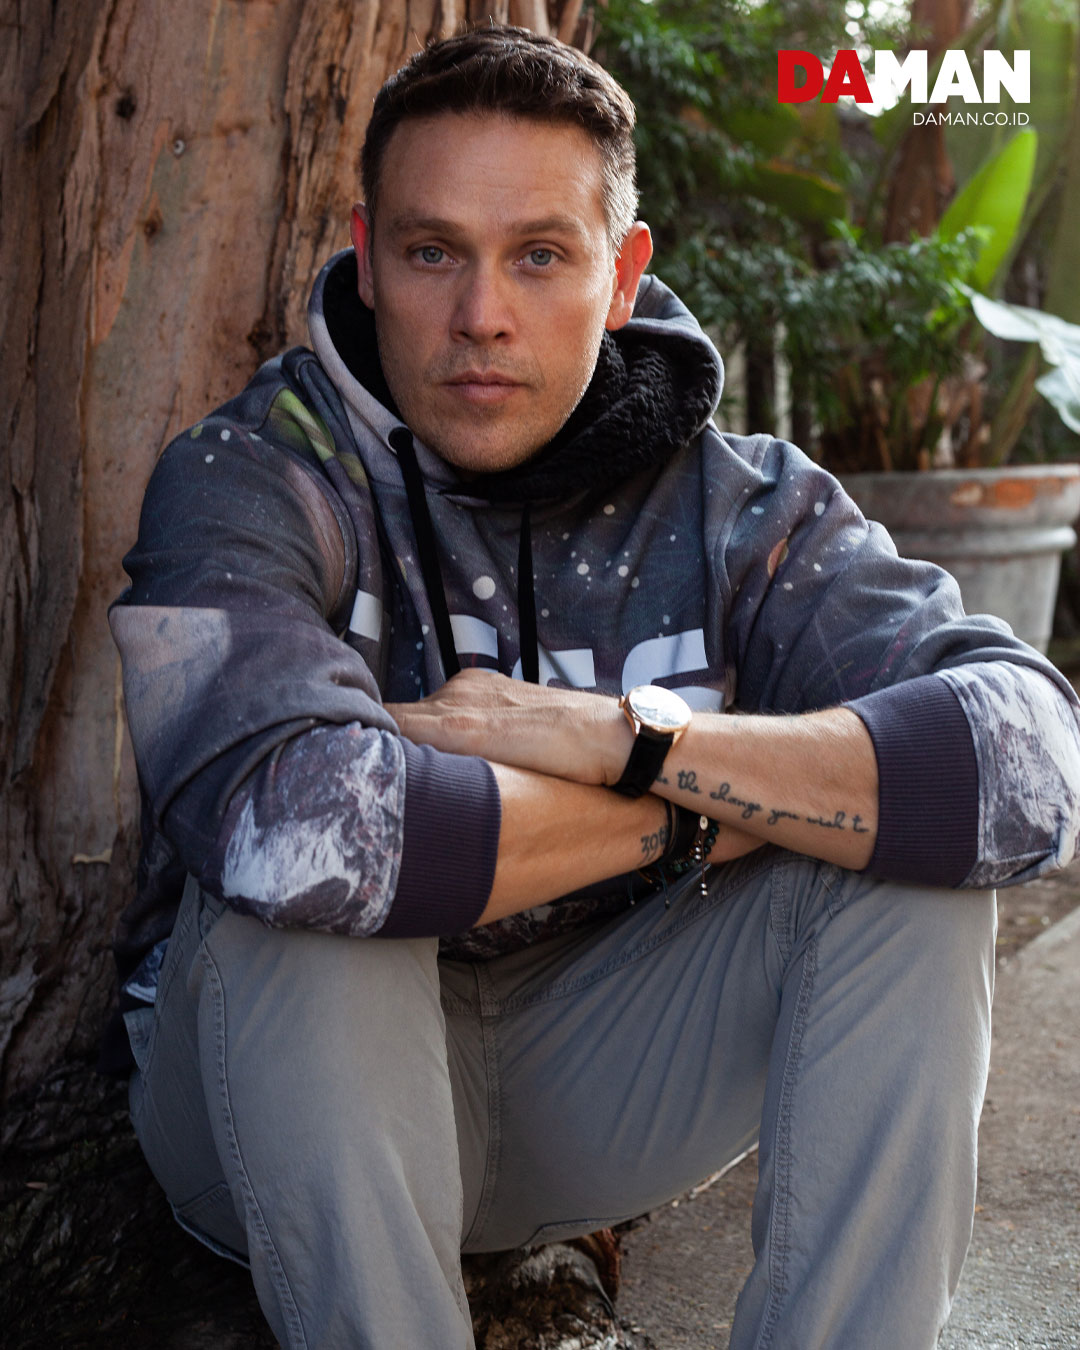 Hoodie by Guess; pants by J crew; watch by Rolex 'Cellini'; leather bracelet by Hermés